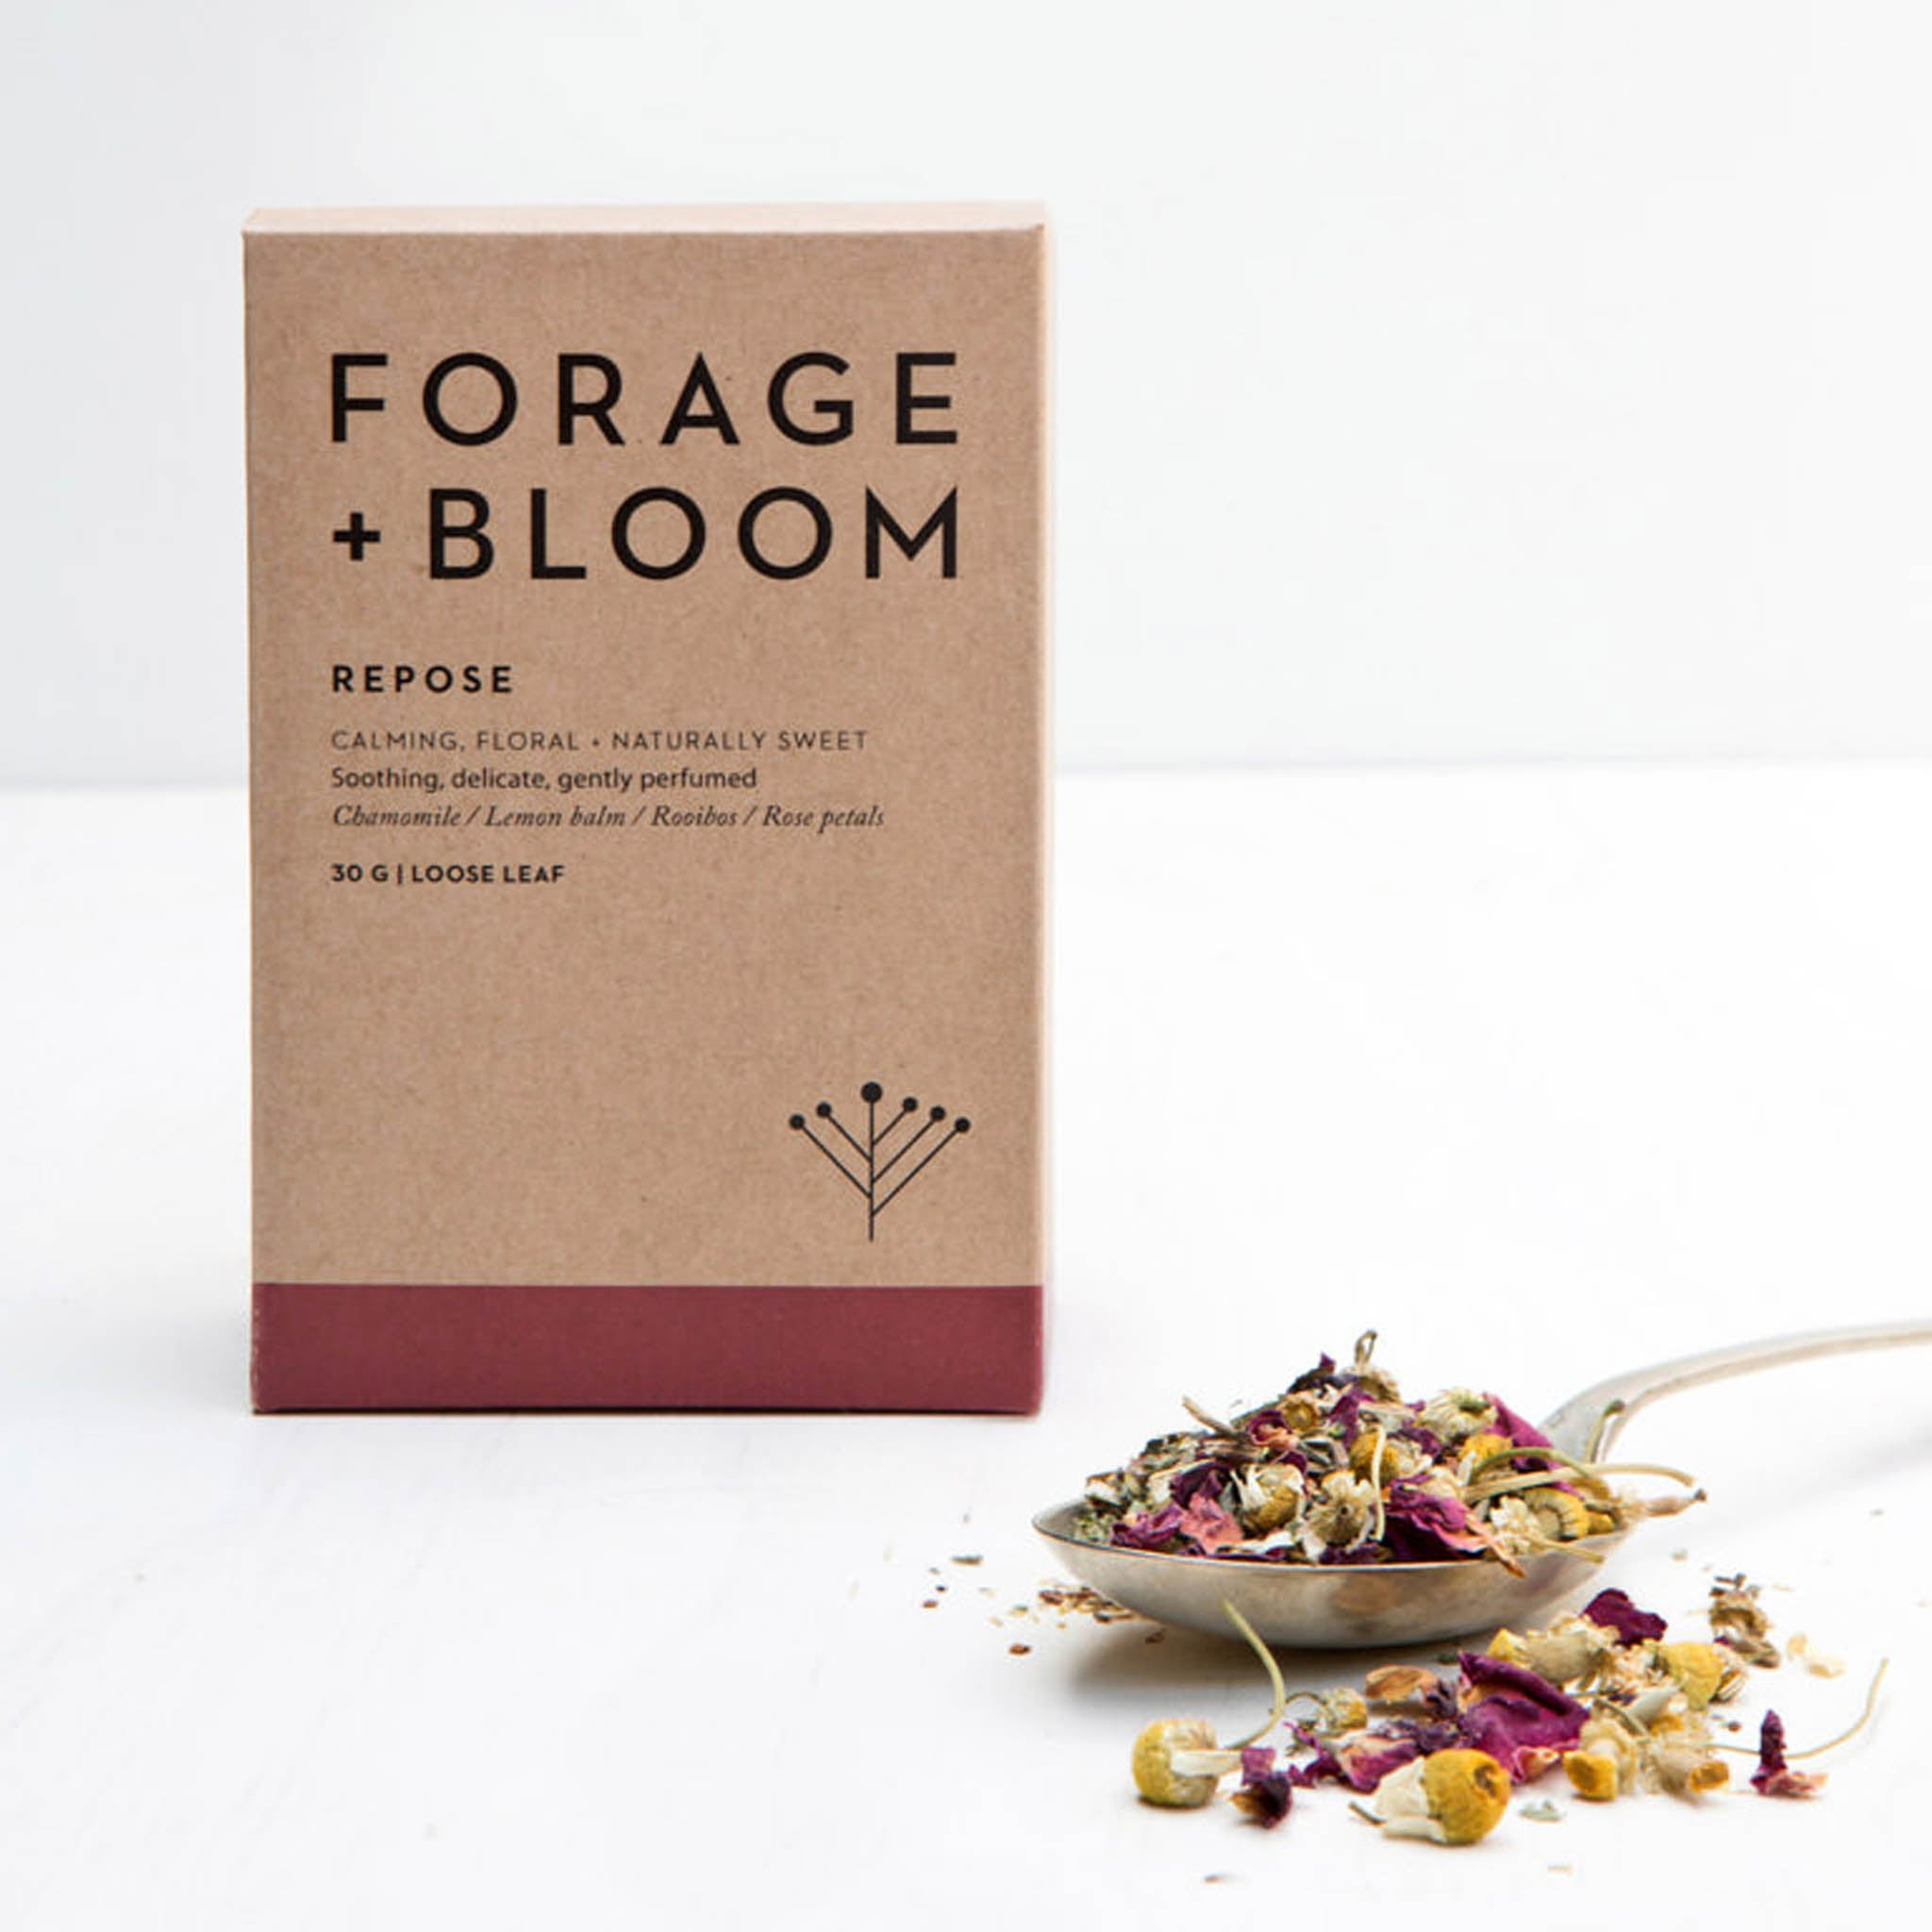 Repose (Chamomile, Lemon Balm, Rooibos & Rose Petals) Herbal Infusion